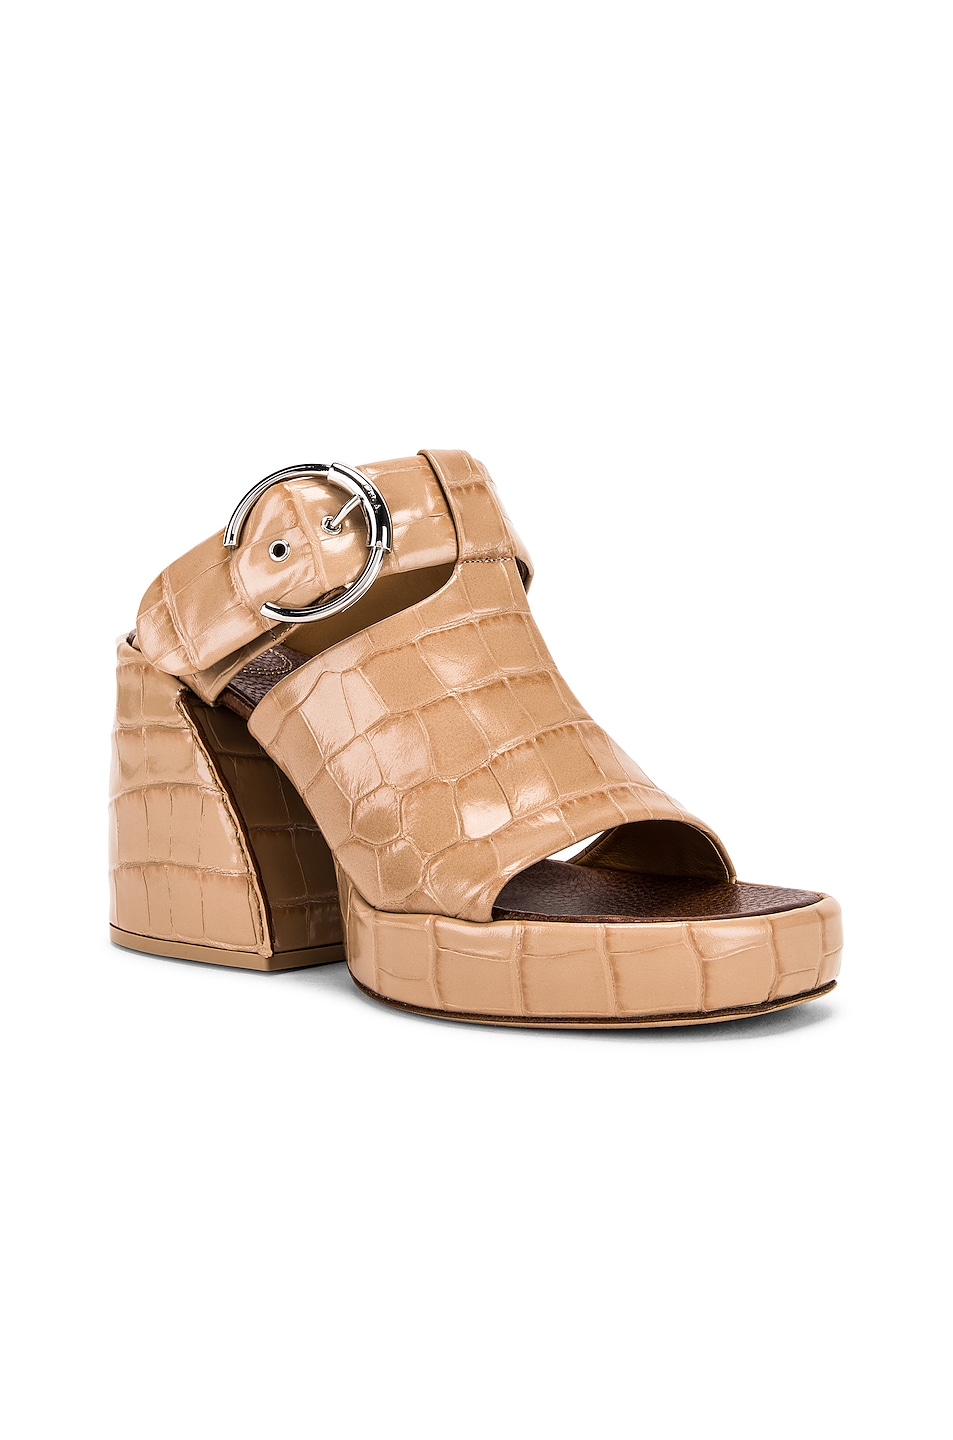 Image 2 of Chloe Buckle Platform Sandals in Nougat